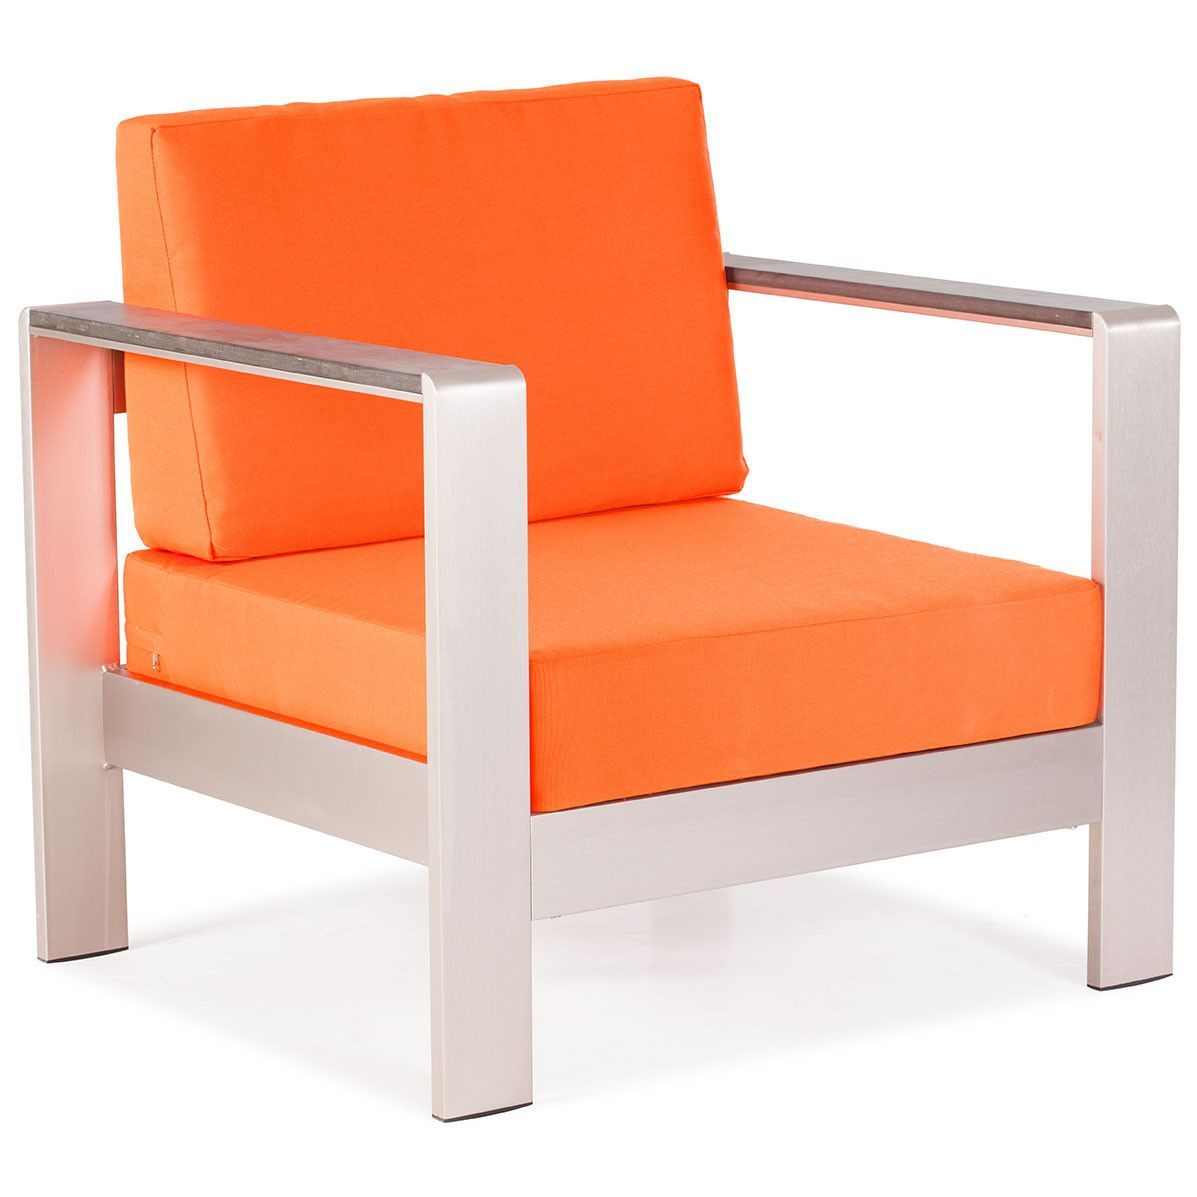 Mod Aluminum Outdoor Arm Chair U2014 Orange Cushions (Set Of 2)